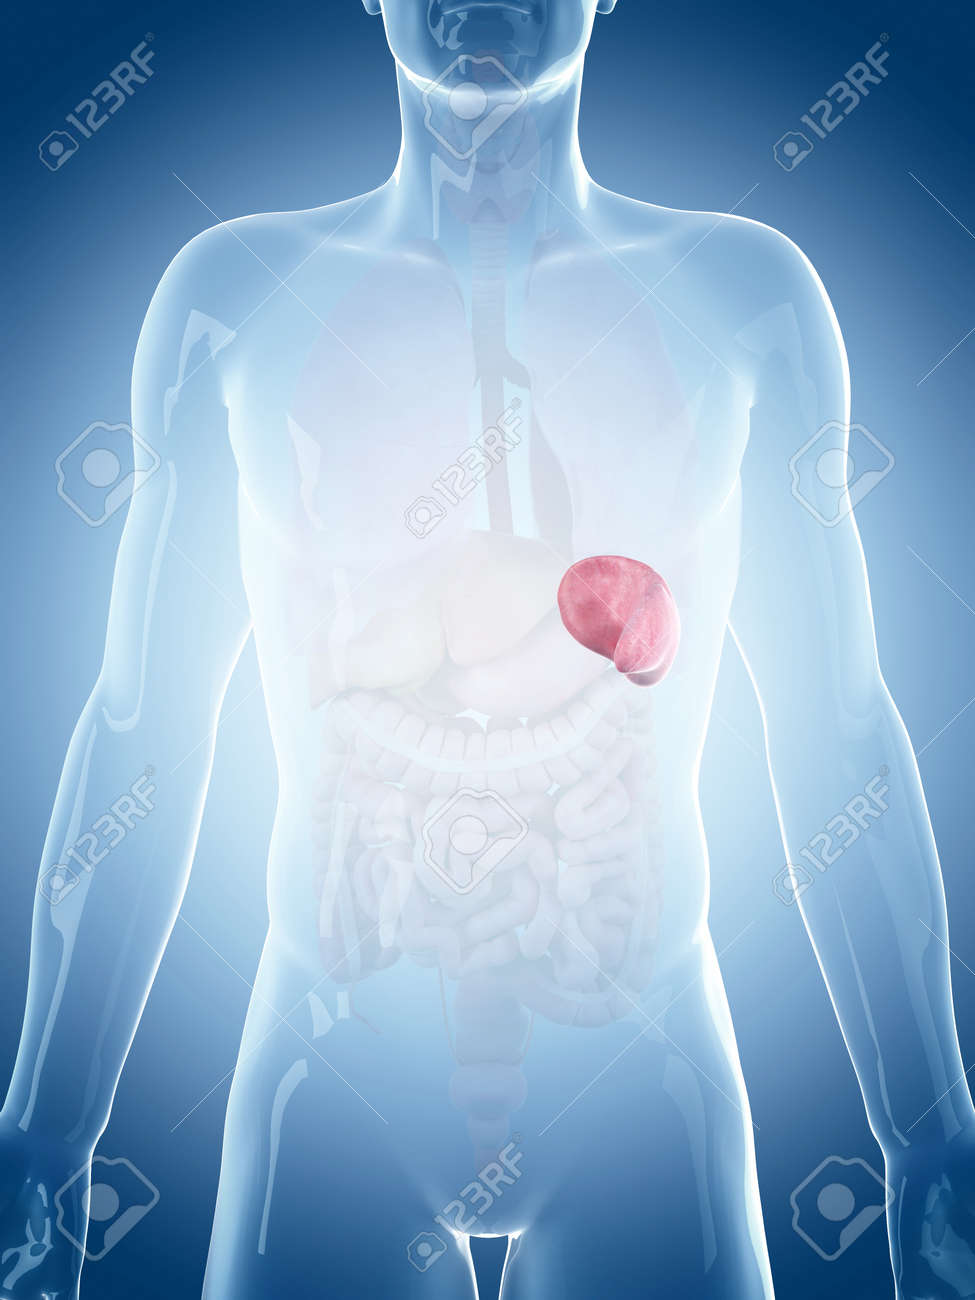 medically accurate illustration of the spleen Stock Illustration - 45345431